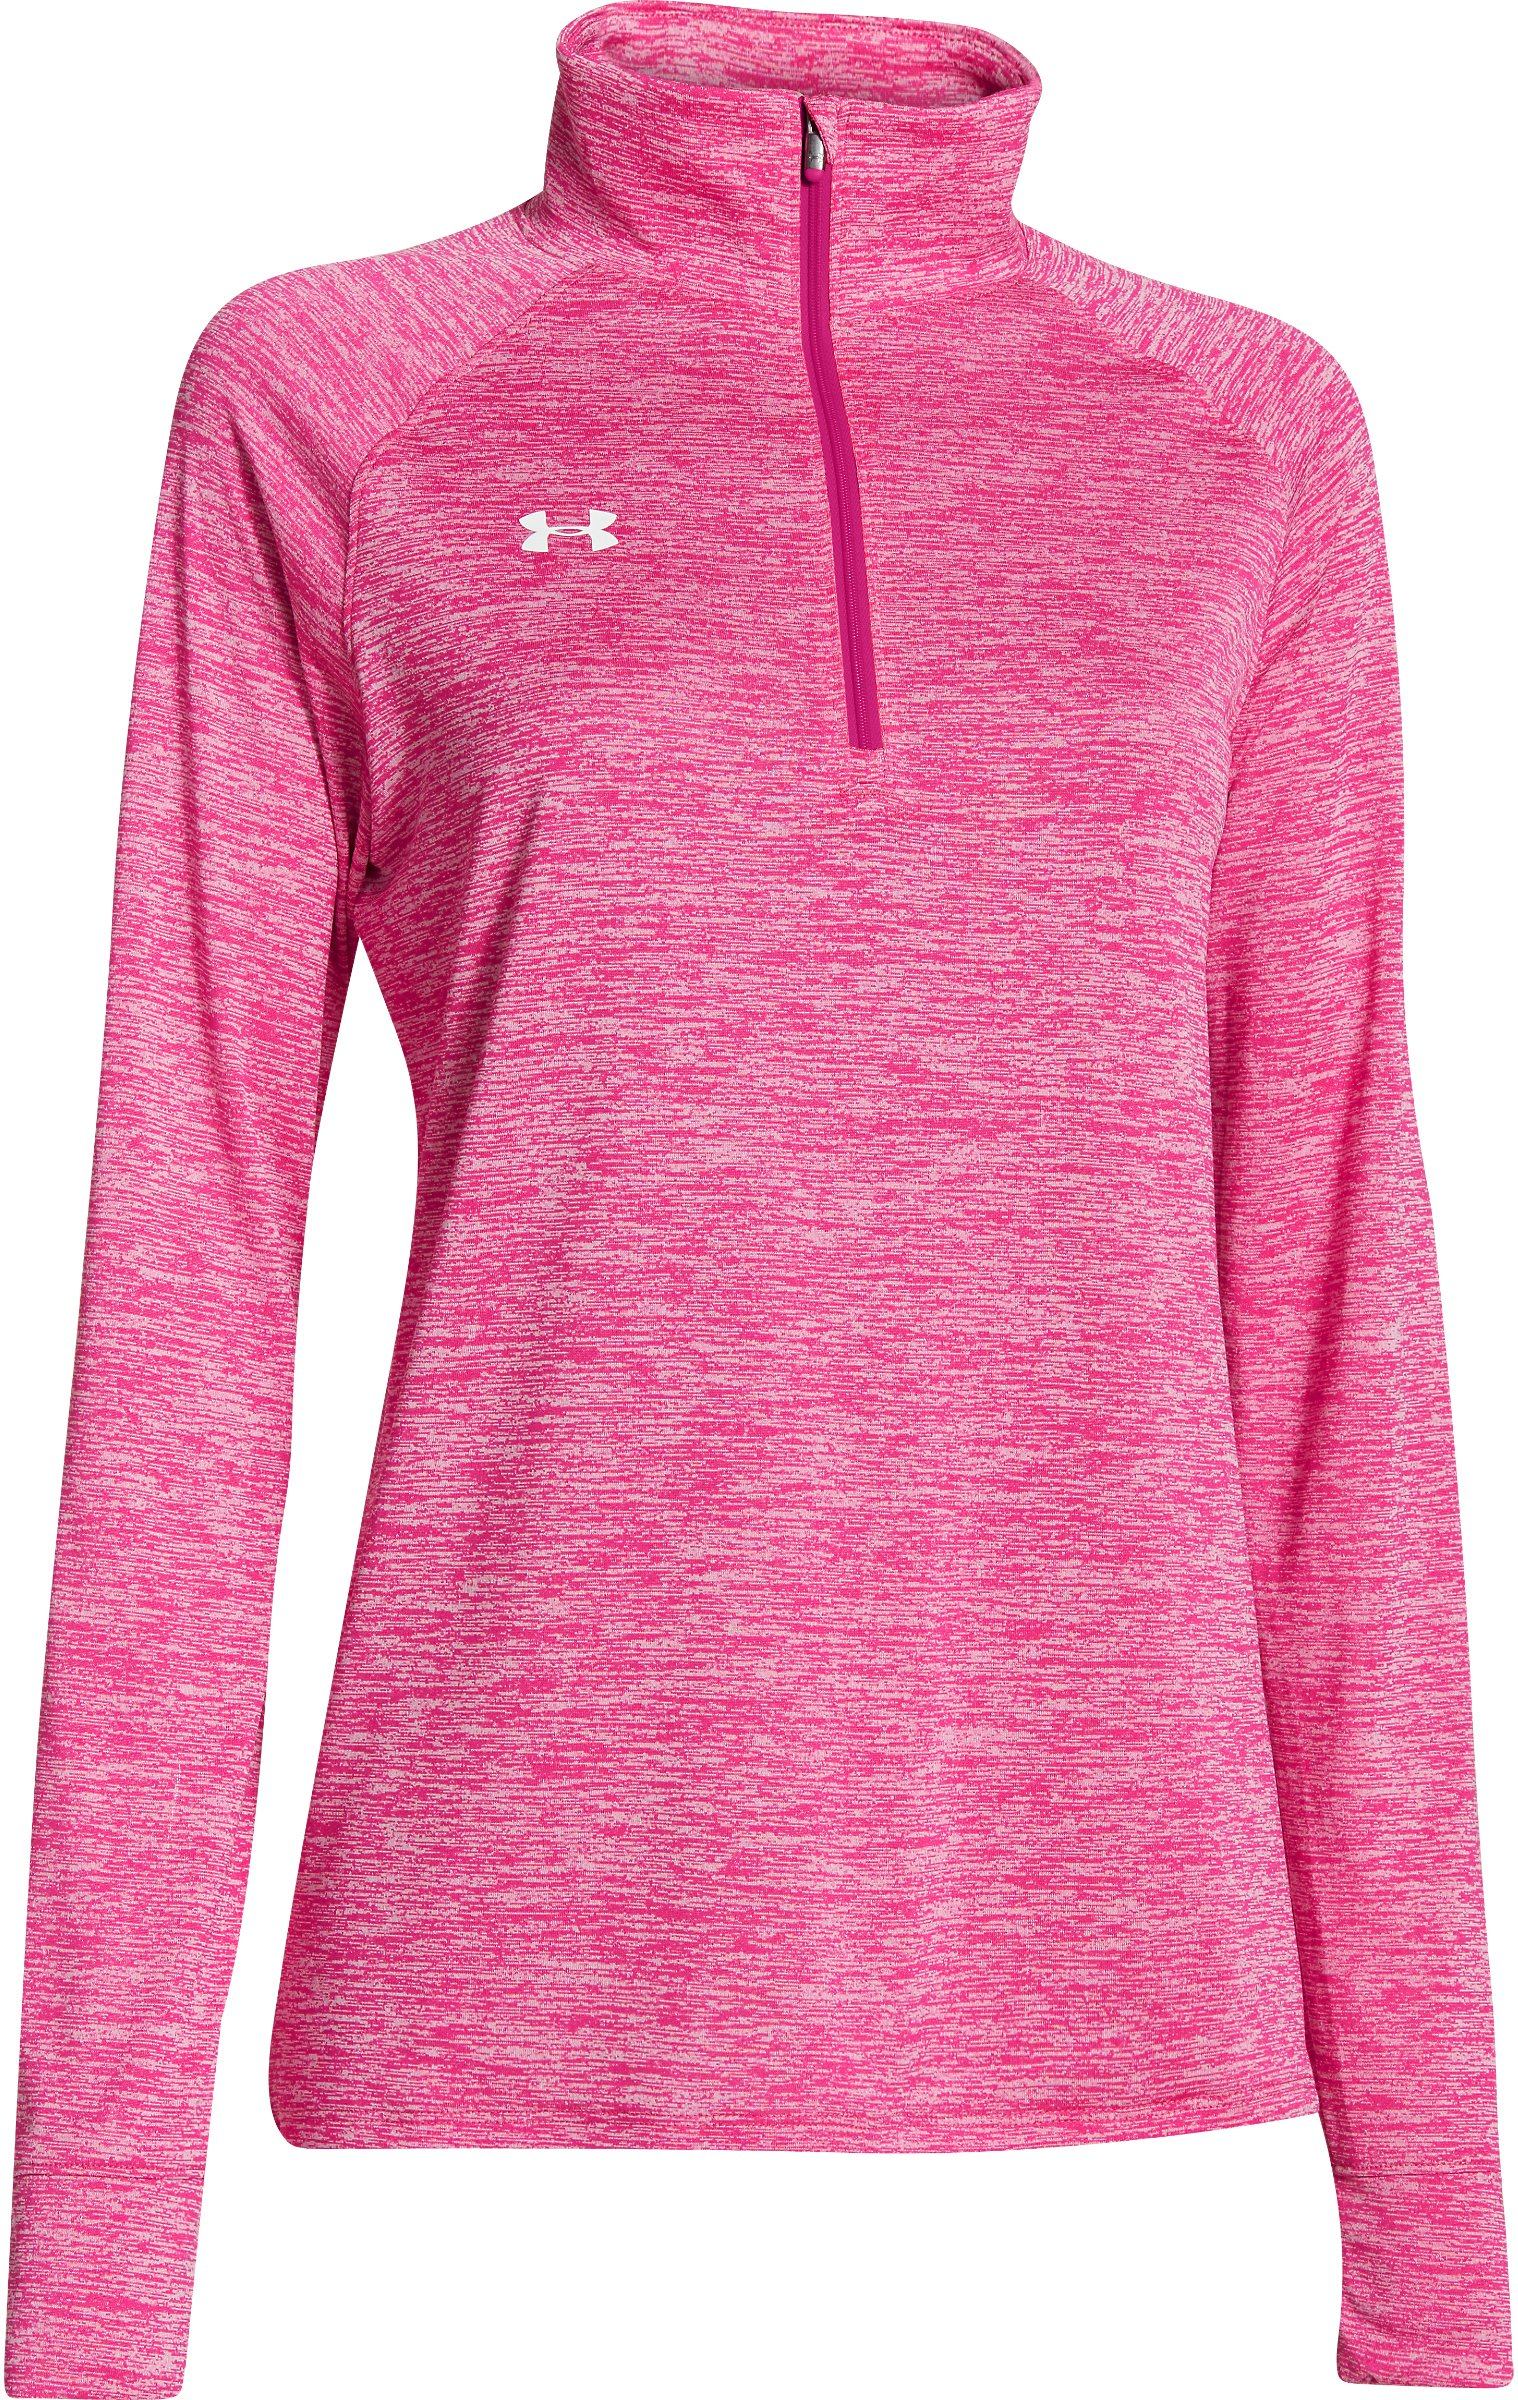 Under Armour UA Sideline Twisted Tech 1/4 Zip, Tropic Pink, Small by Under Armour (Image #1)